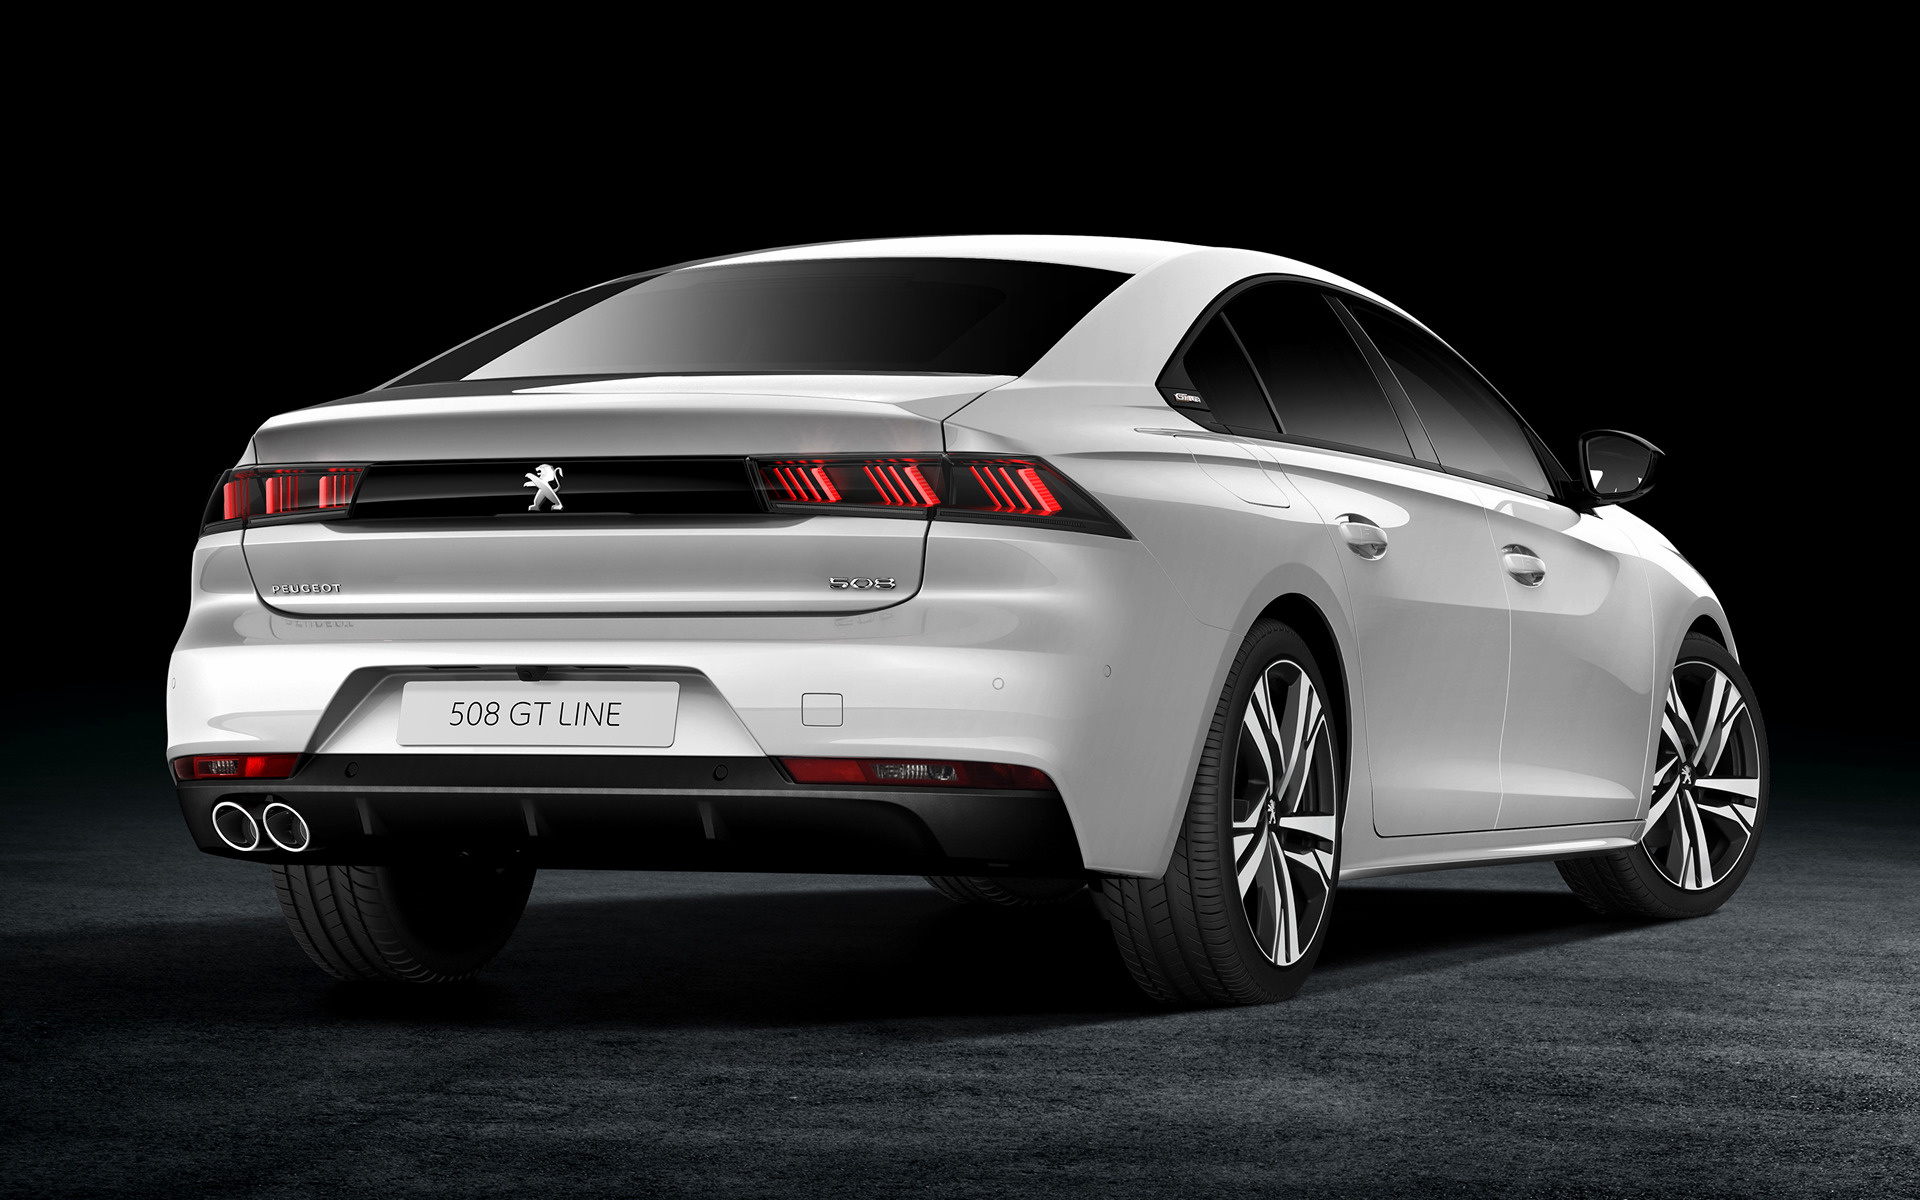 WE BET YOU DIDN'T KNOW THESE FACTS ABOUT PEUGEOT 508 GT LINE